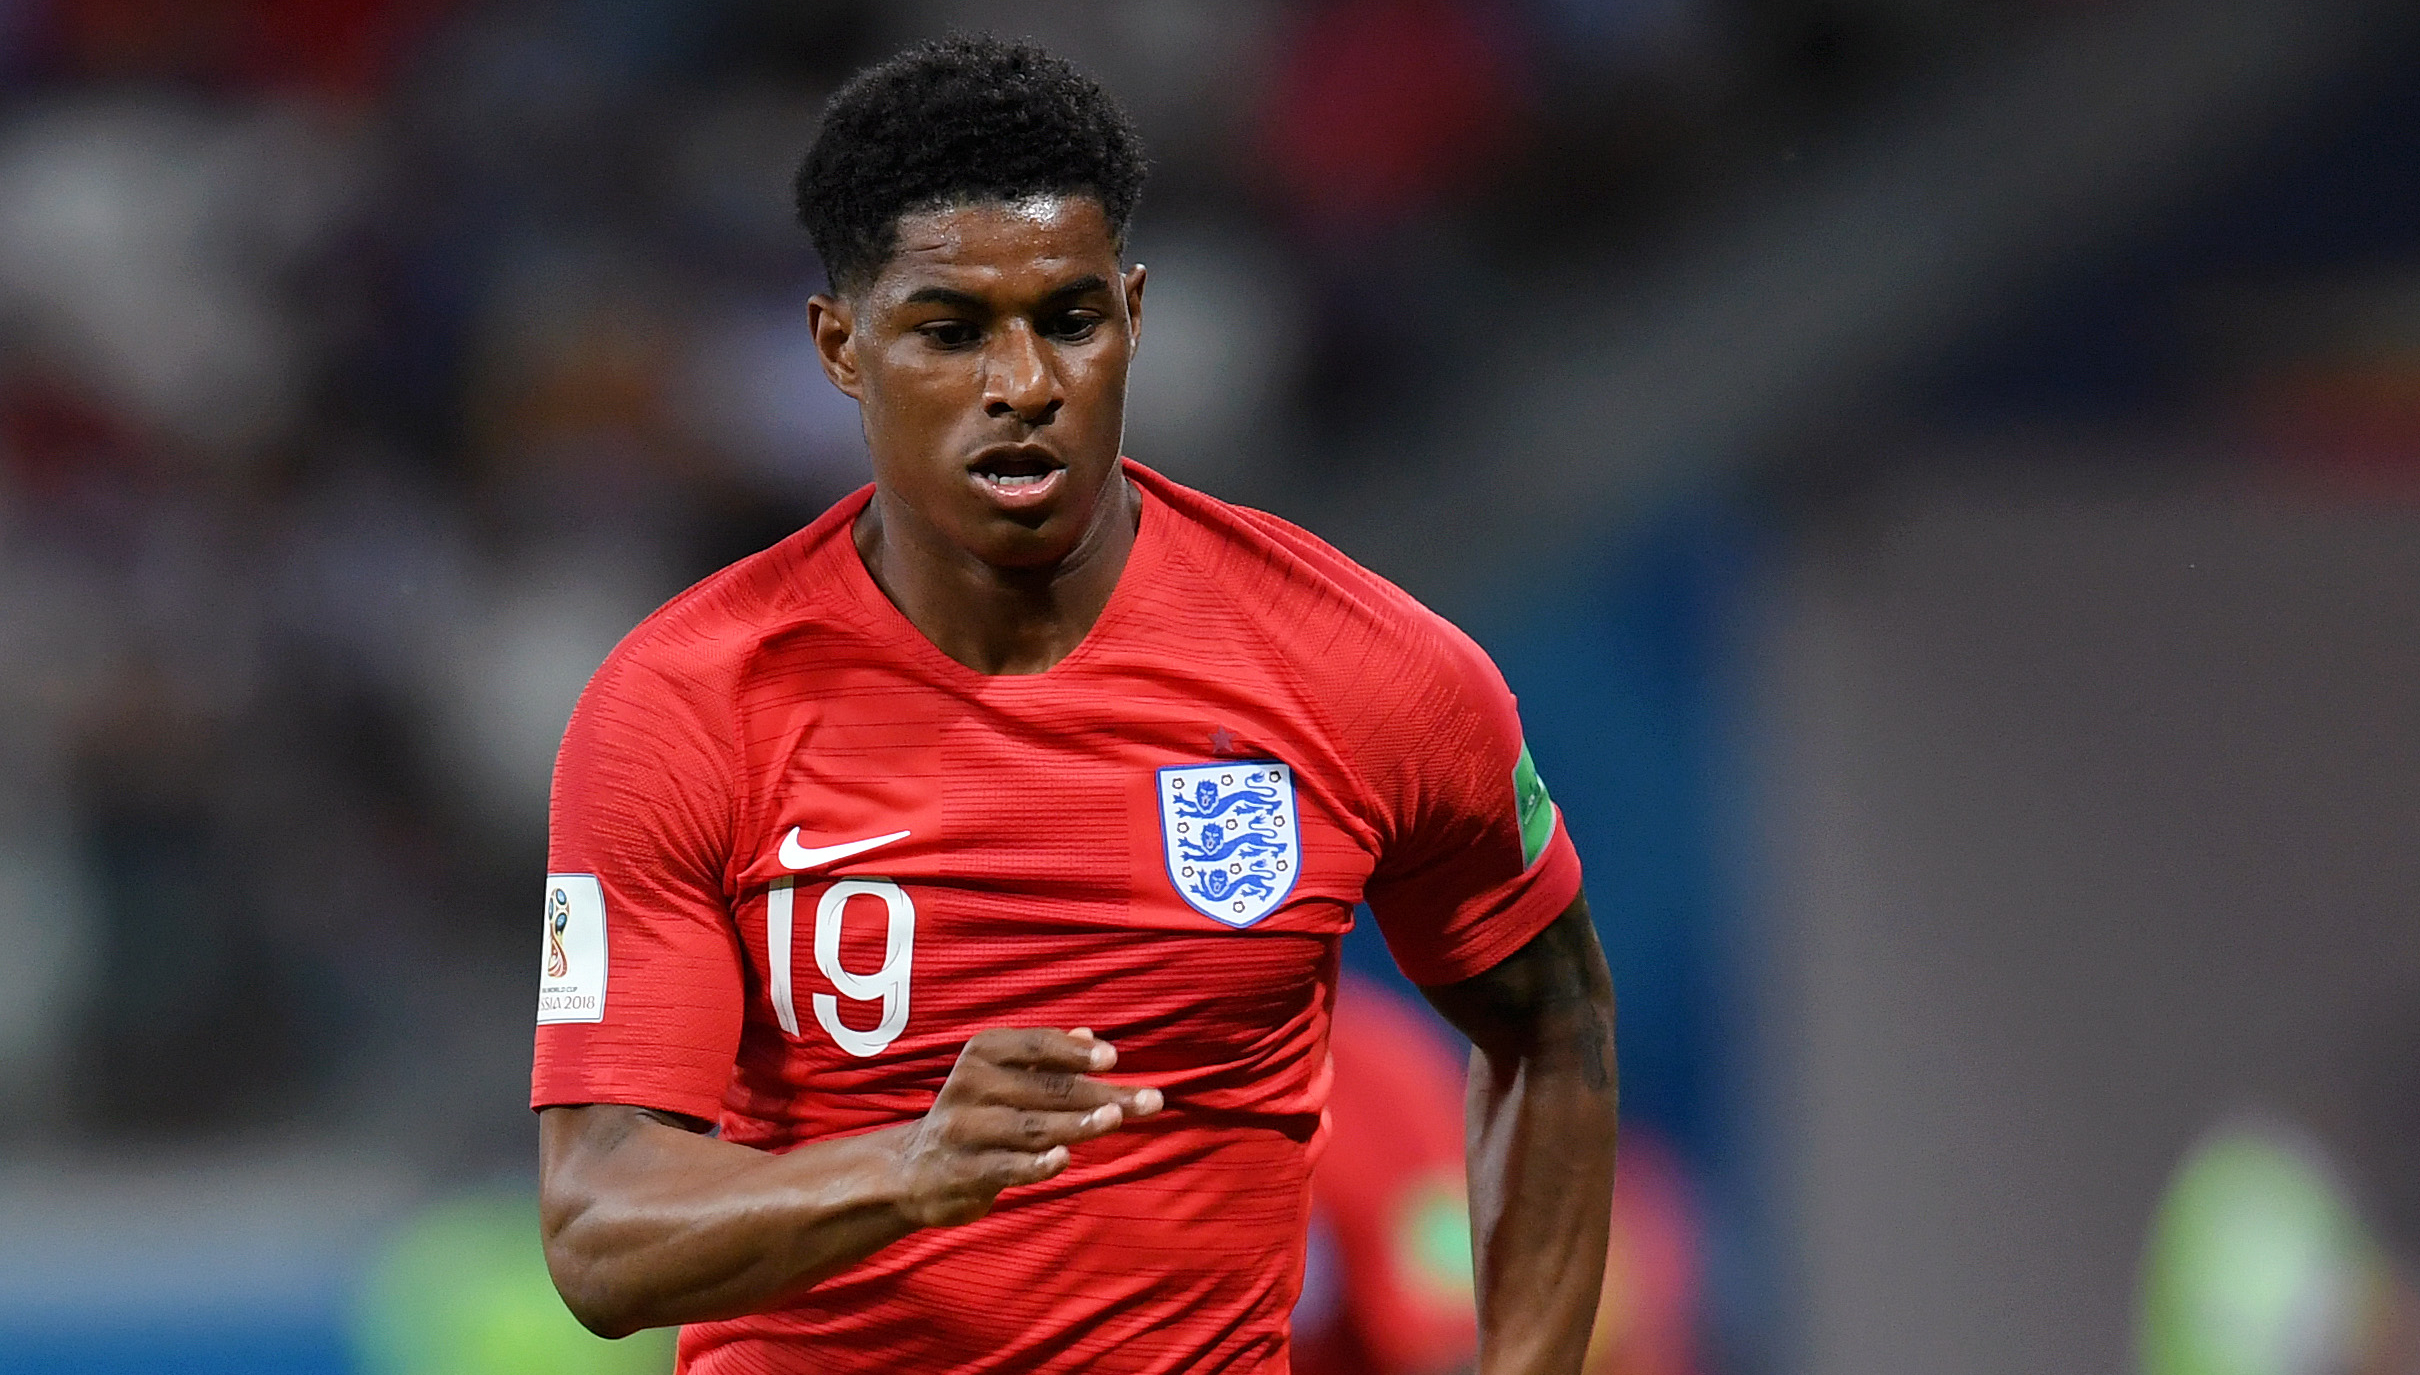 Rashford should replace Sterling for Panama game - Carragher